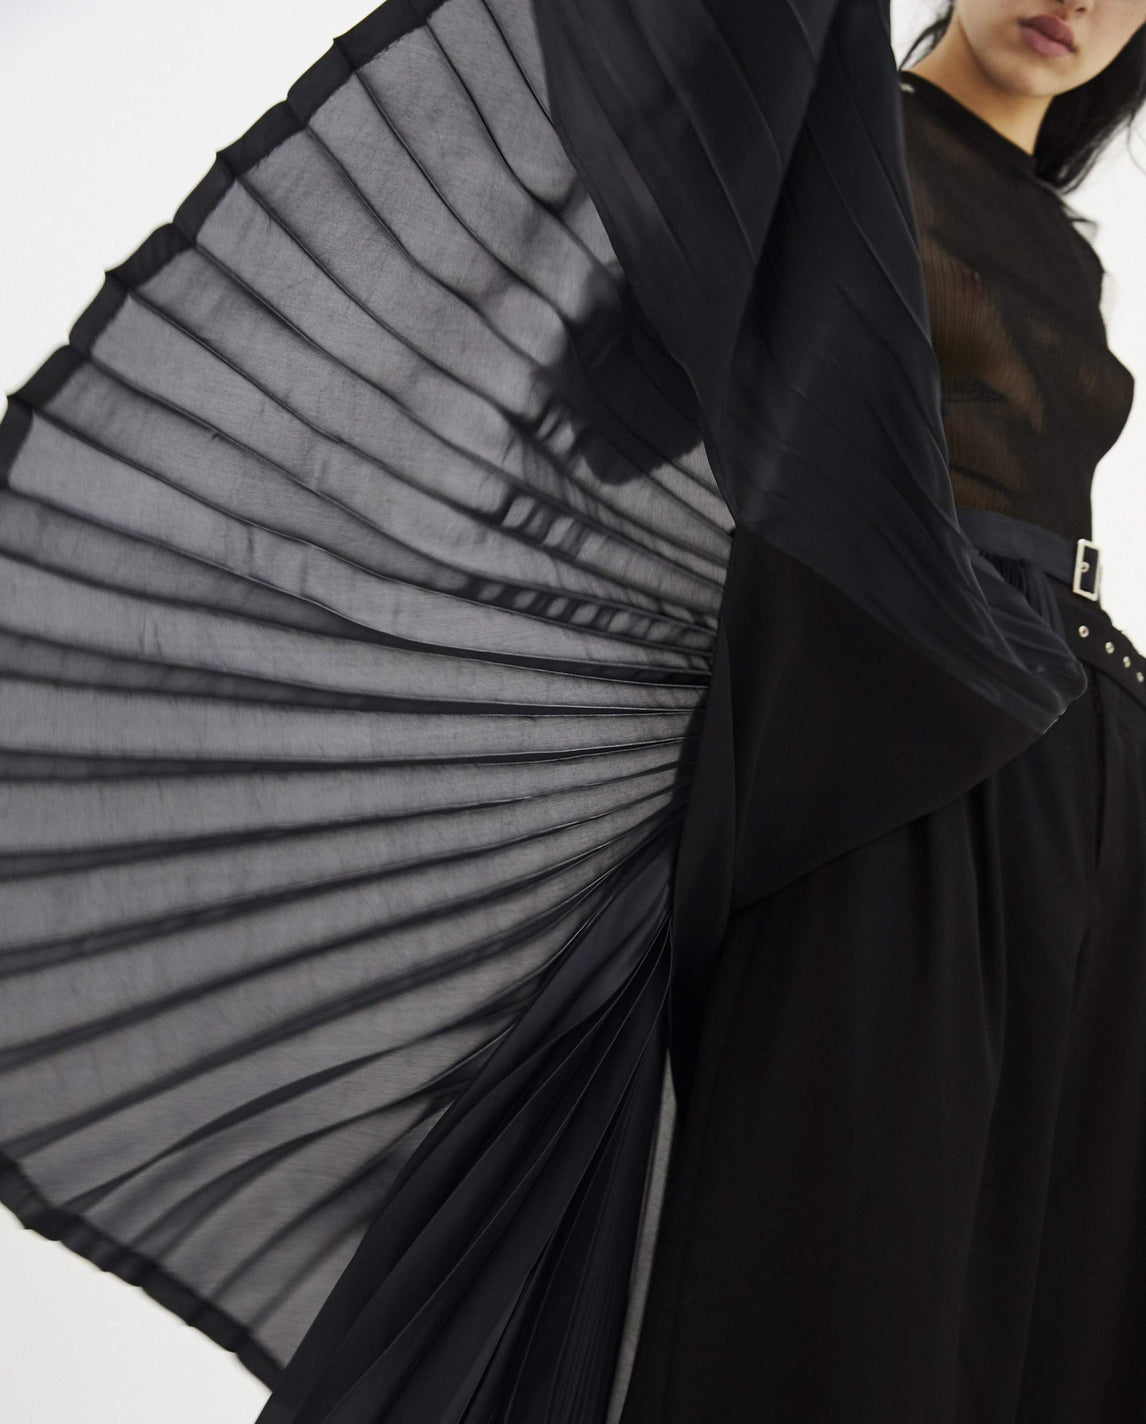 Pleated Skirt - Black WOMENS NOIR KEI NINOMIYA